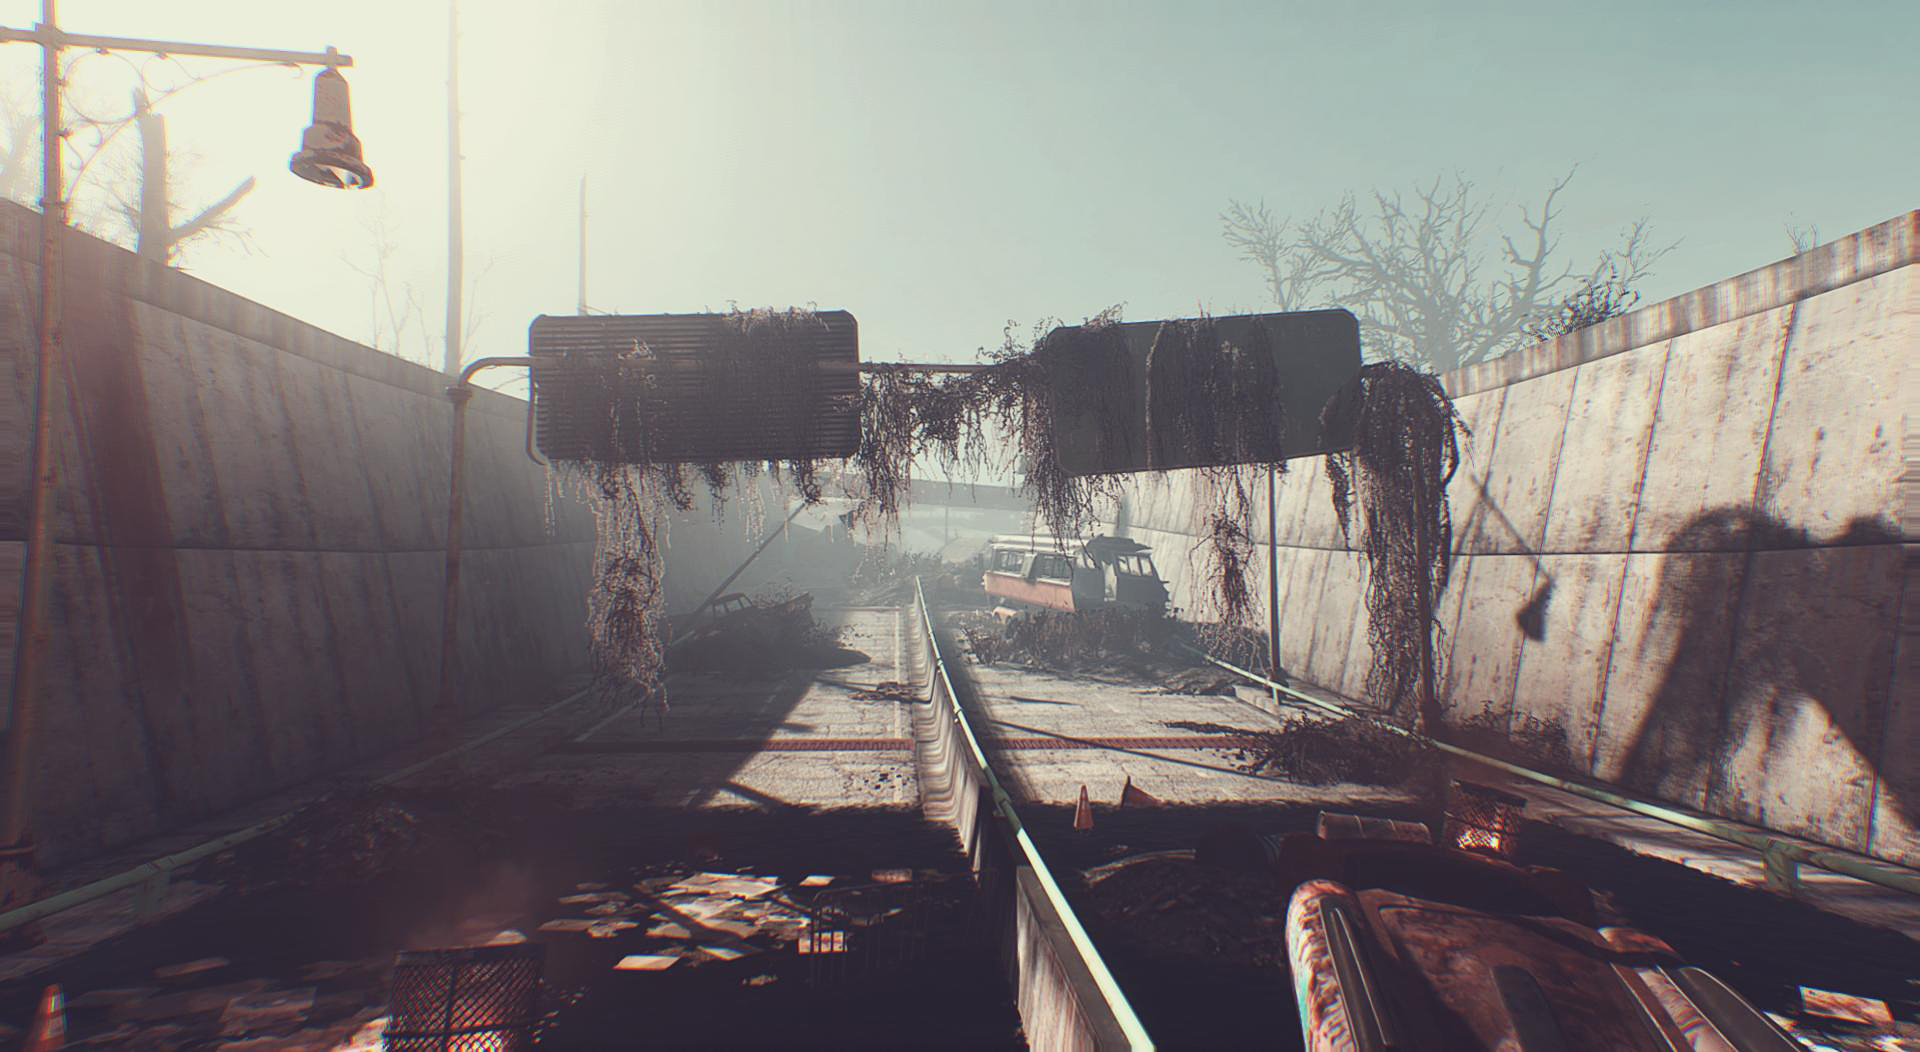 This New Photorealistic Fallout 4 Mod Looks Outstanding 1720 1 1451680137